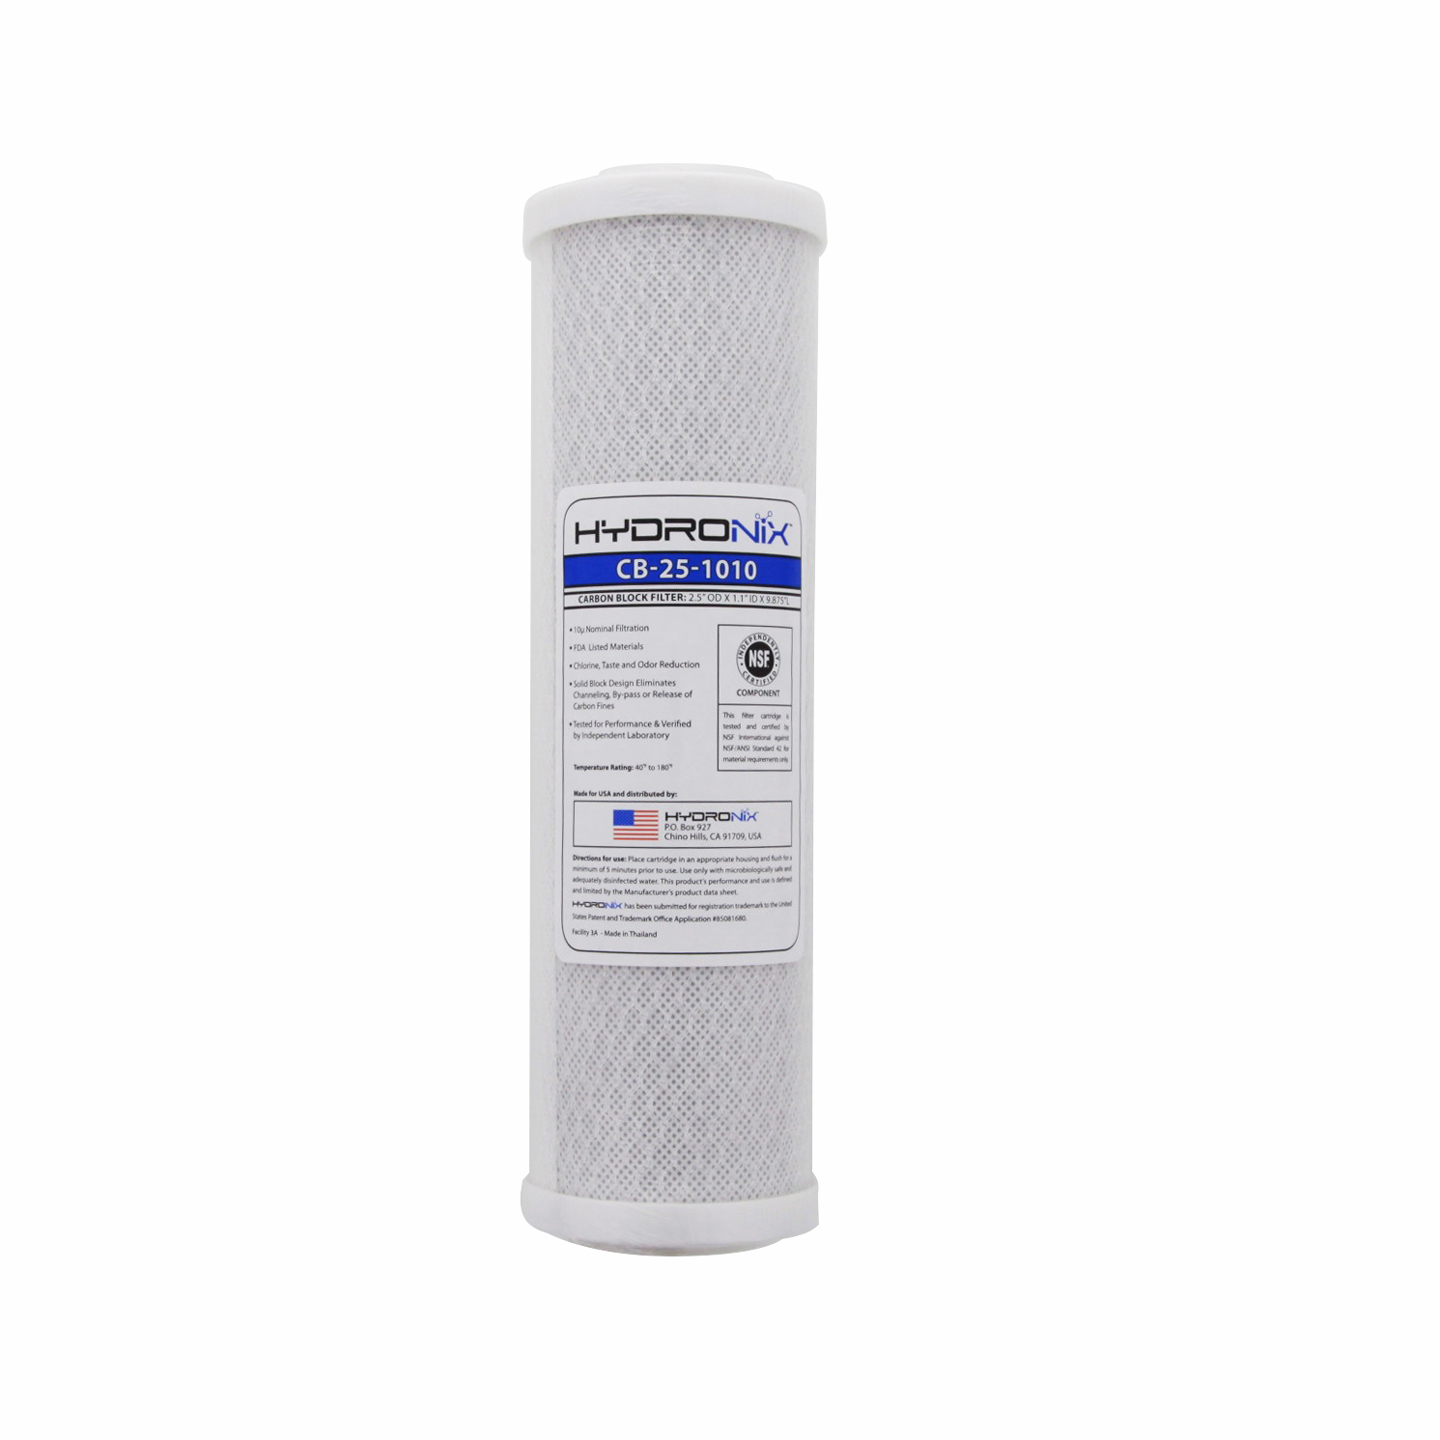 NSF Carbon Under Sink Replacement Filter HYDRONIX-CB-25-1010